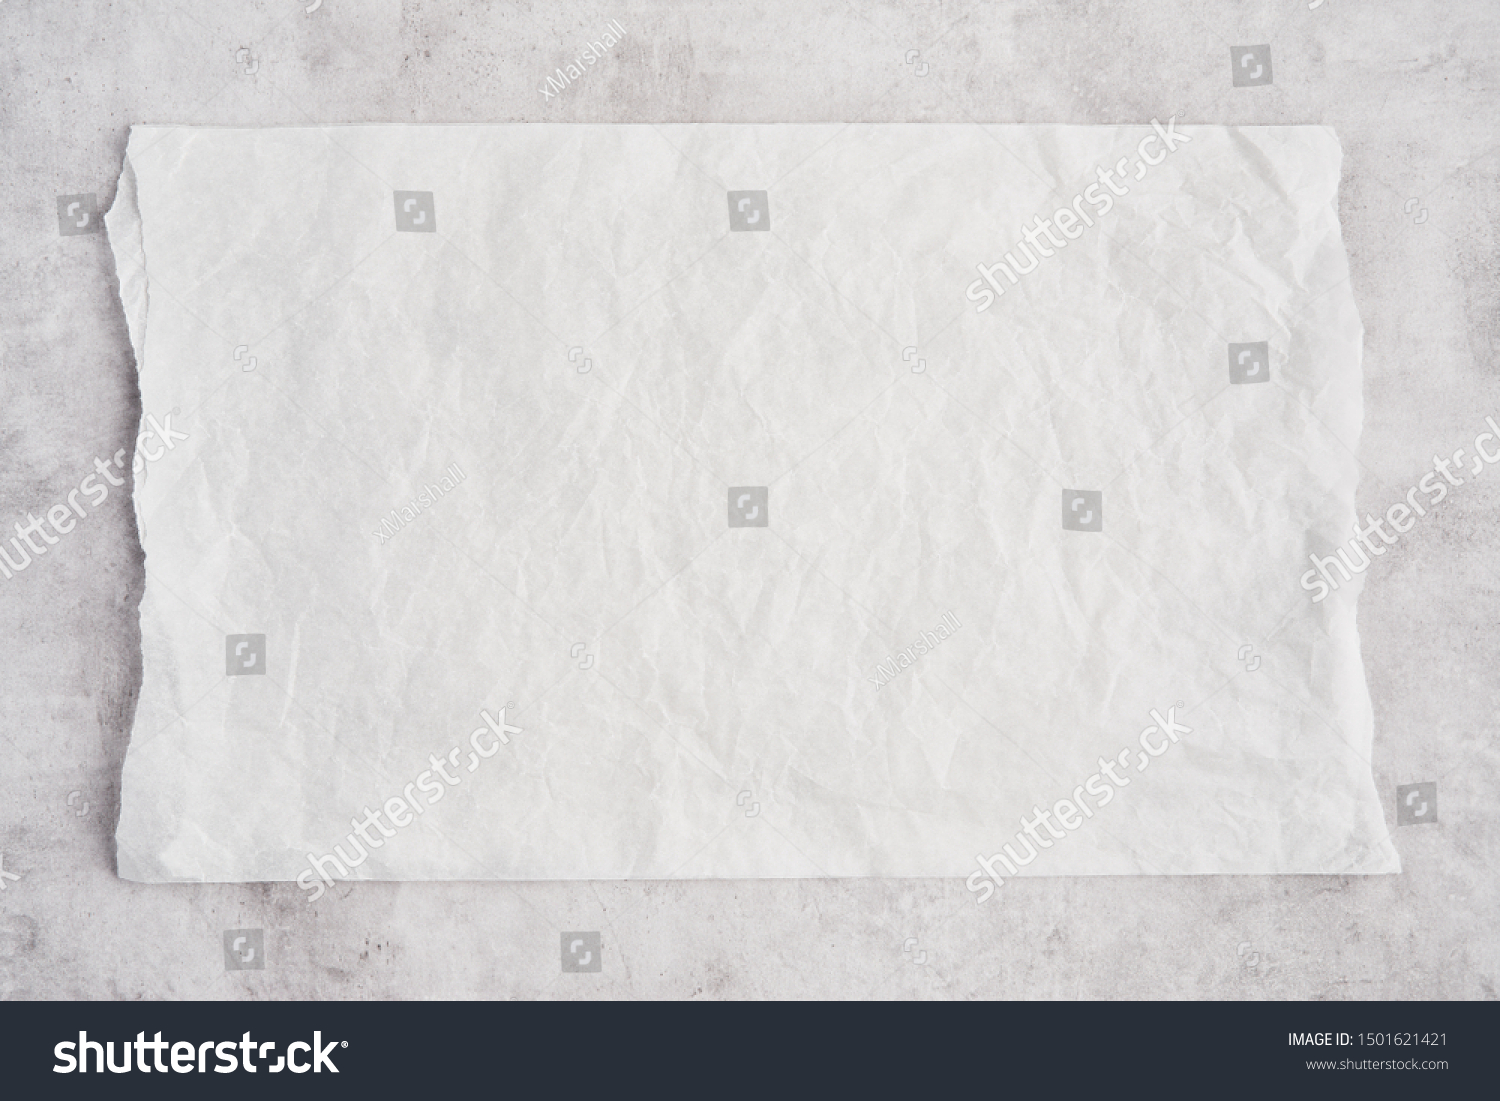 Crumpled piece of white parchment or baking paper on grey concrete background. Top view. Copy space for text and design element. #1501621421